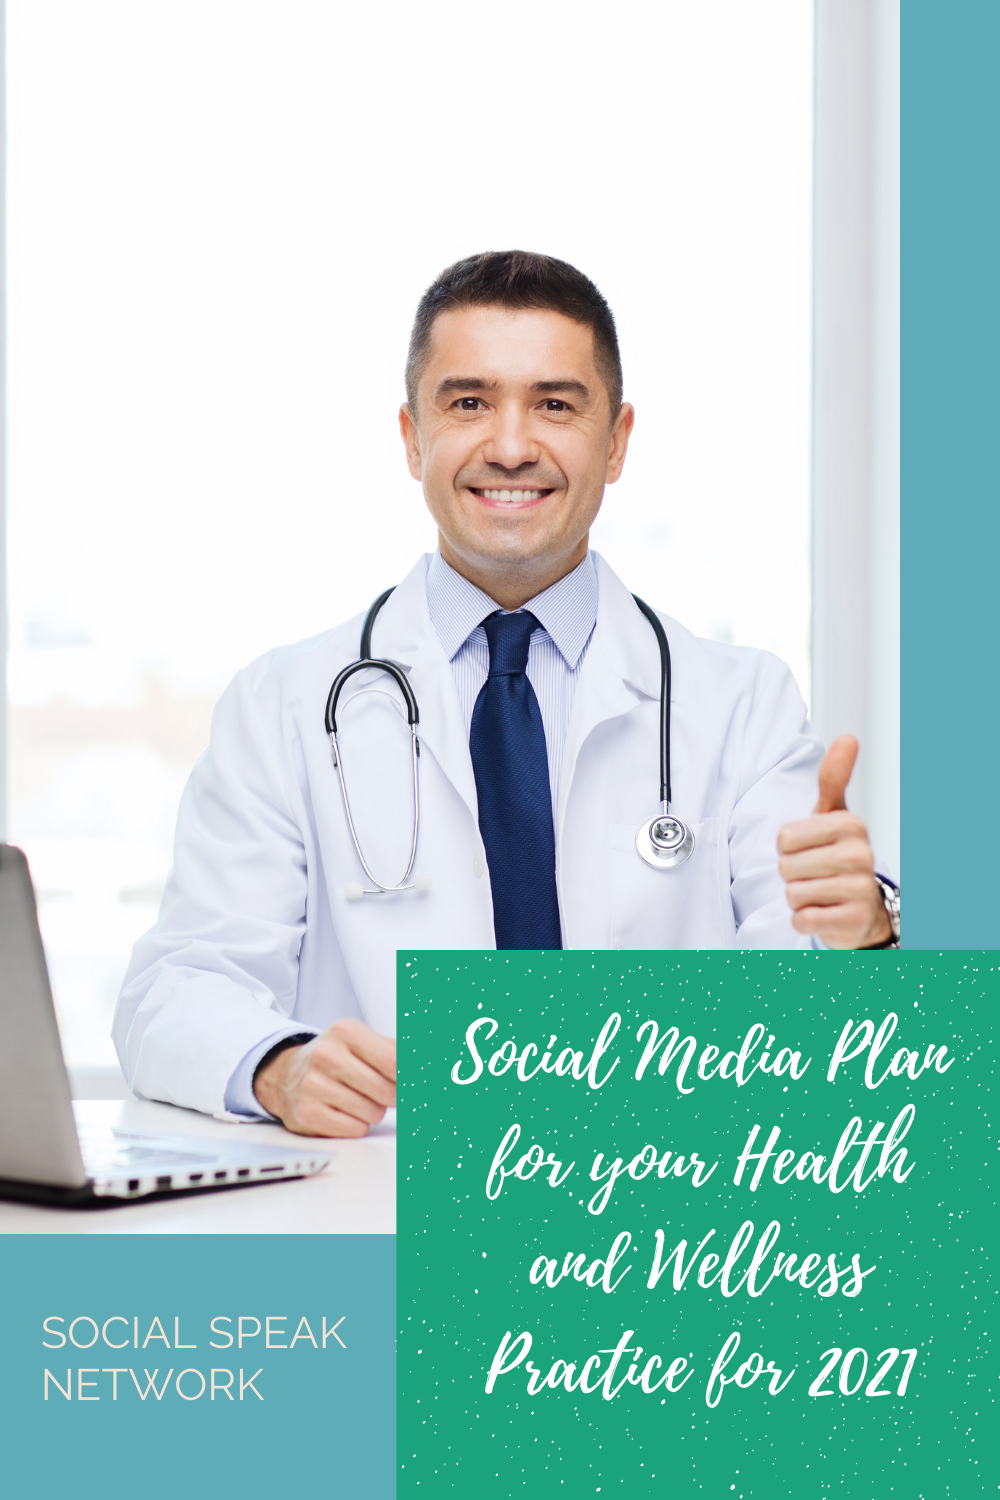 Social Media Plan for Your Health and Wellness Practice for 2021